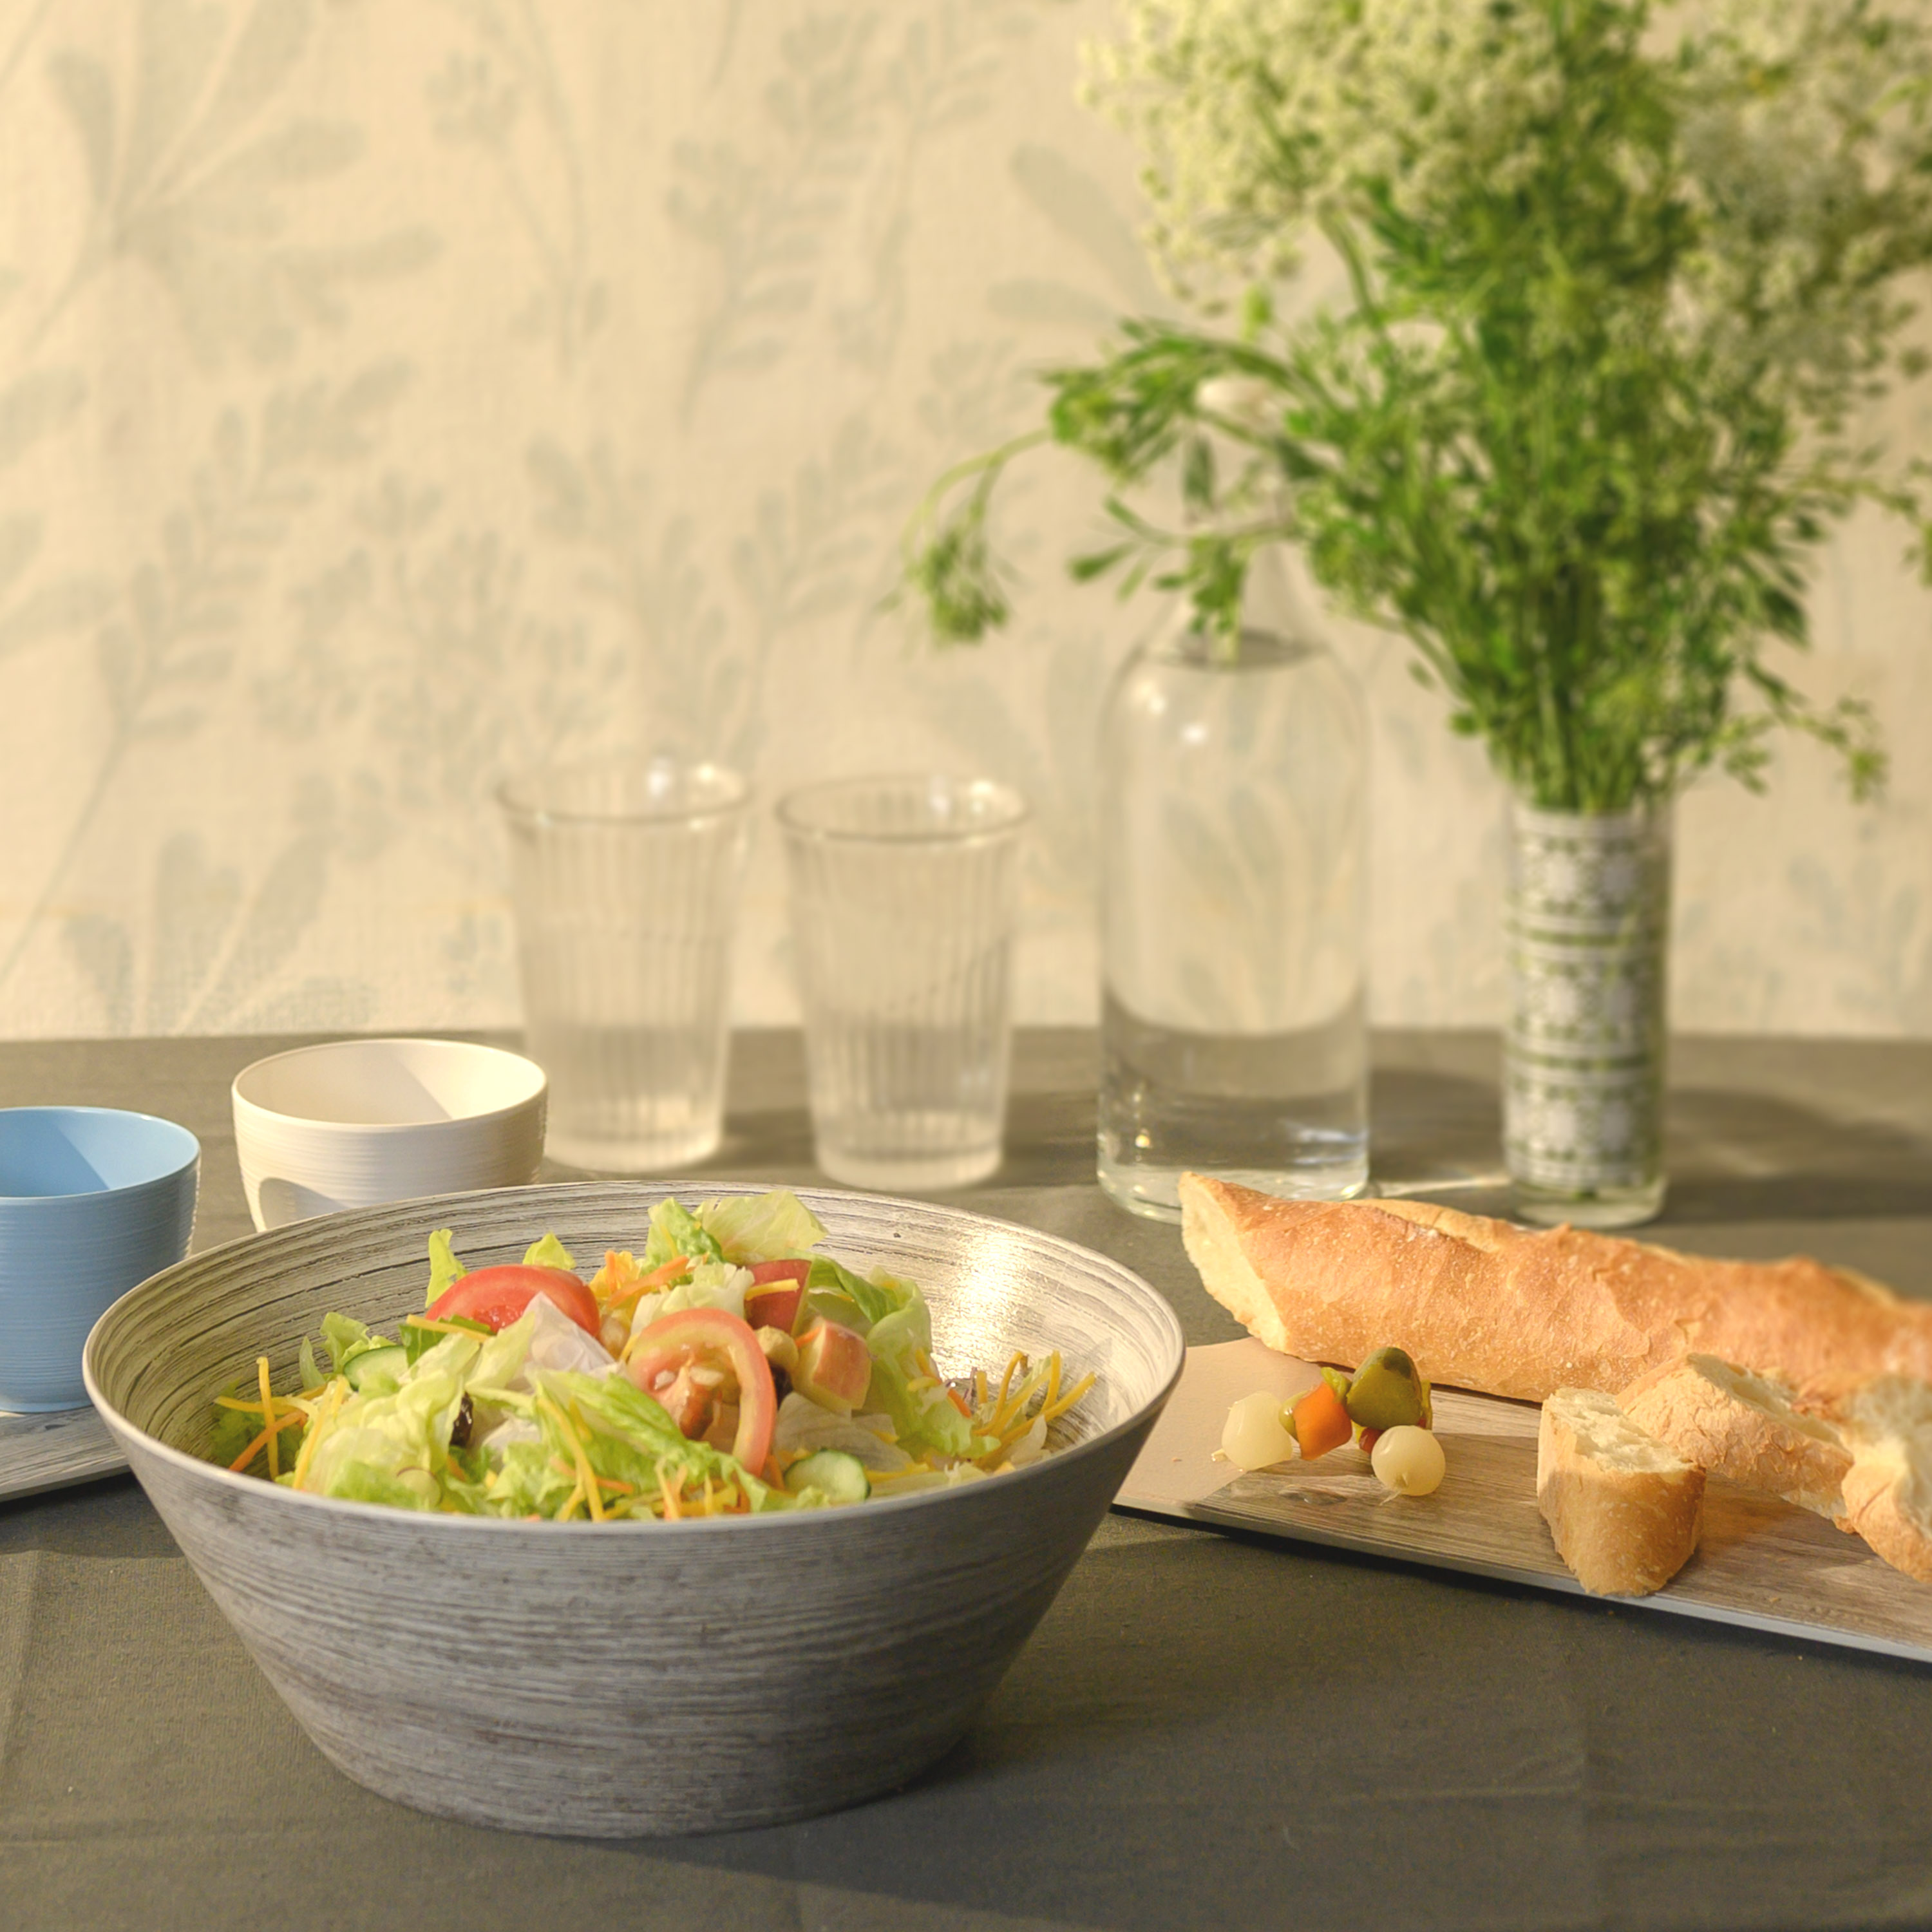 Zak Style Serving and Dip Bowls, Assorted Colors, 4-piece set slideshow image 2